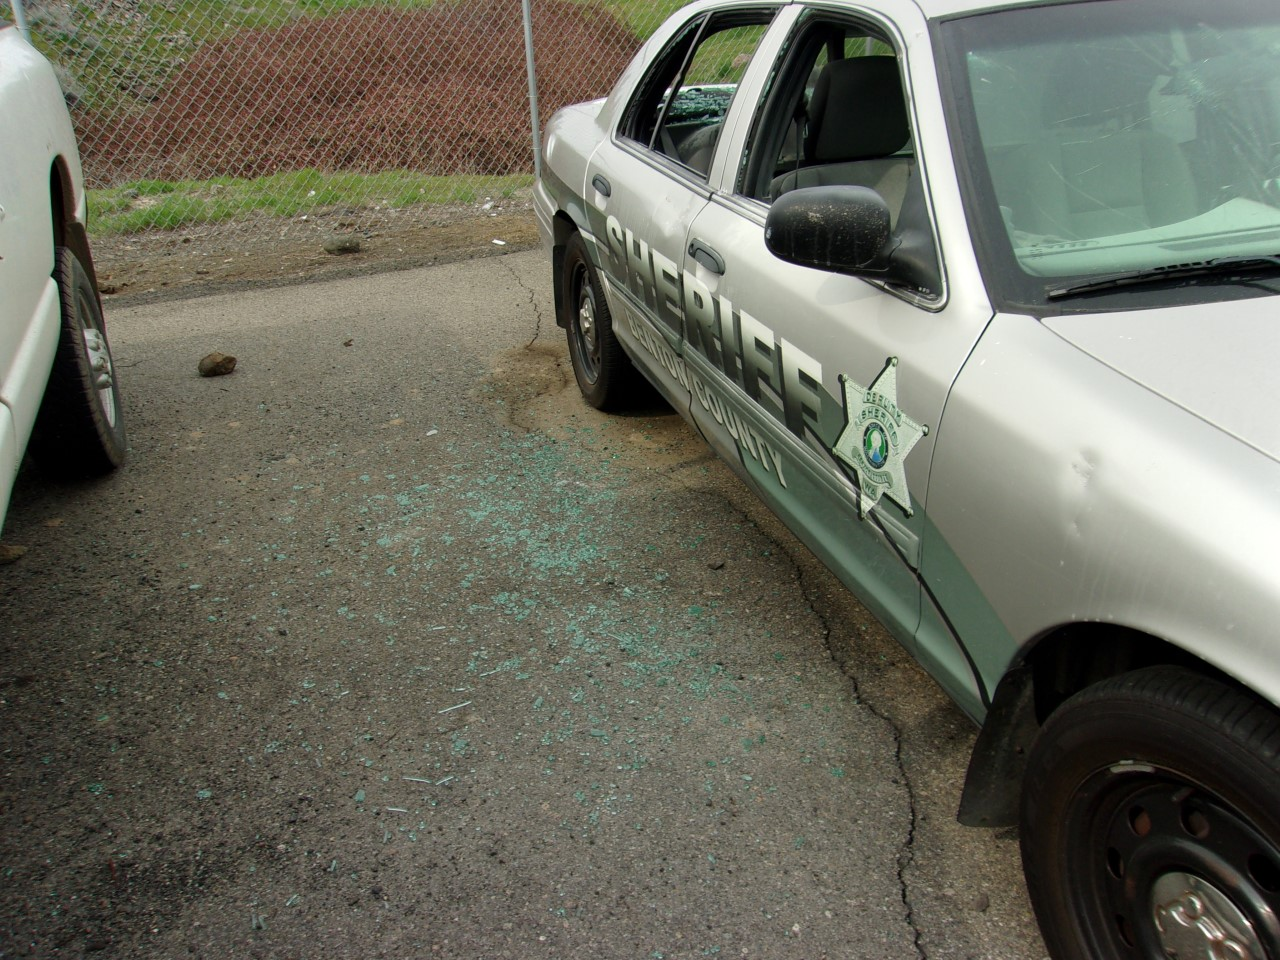 Benton County sheriffs patrol car damaged, sprayed with graffiti